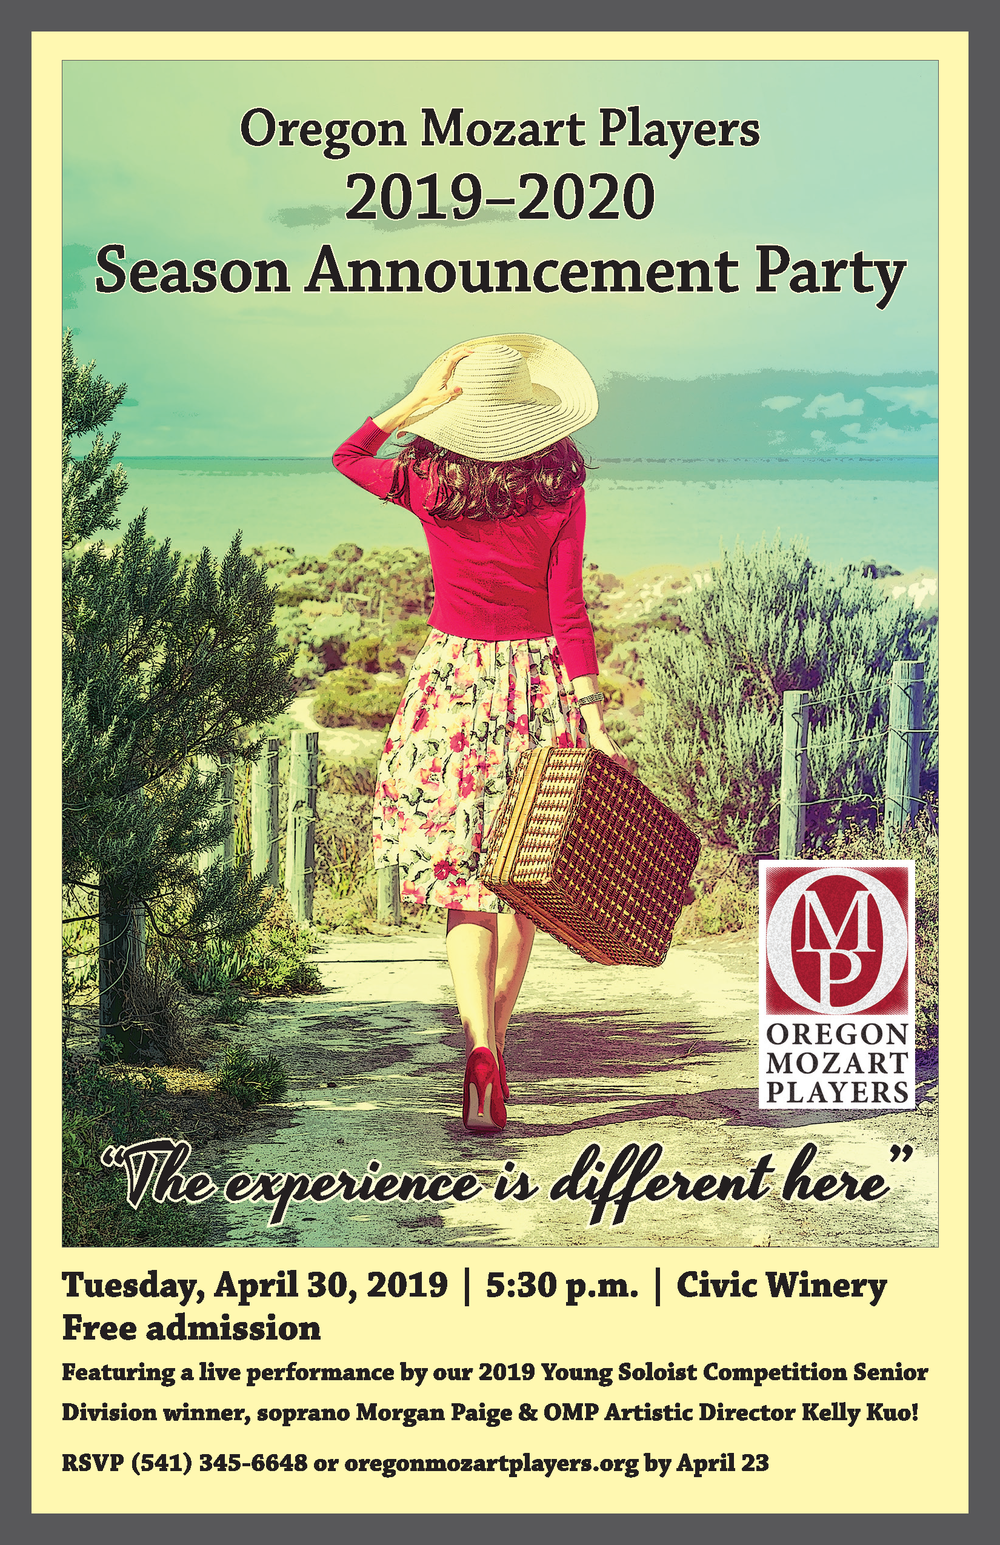 Tuesday, April 30 | 5:30 p.m.Civic Winery - Join us for our 2019-2020 Season Announcement Party! We'll be announcing the great things we have planned for next season, as well as featuring a performance by 2019 Young Soloist Competition Senior Division winner, soprano Morgan Paige and OMP Artistic Director Kelly Kuo!Civic Winery is located at 50 East 11th Avenue in Eugene.Admission is free; however, your RSVP guarantees a glass of Civic Winery's delicious local wine and helps us ensure we have plenty of hors d'oeuvres to go around!Please RSVP by calling our office at (541) 345-6648 or at the button below before April 23.